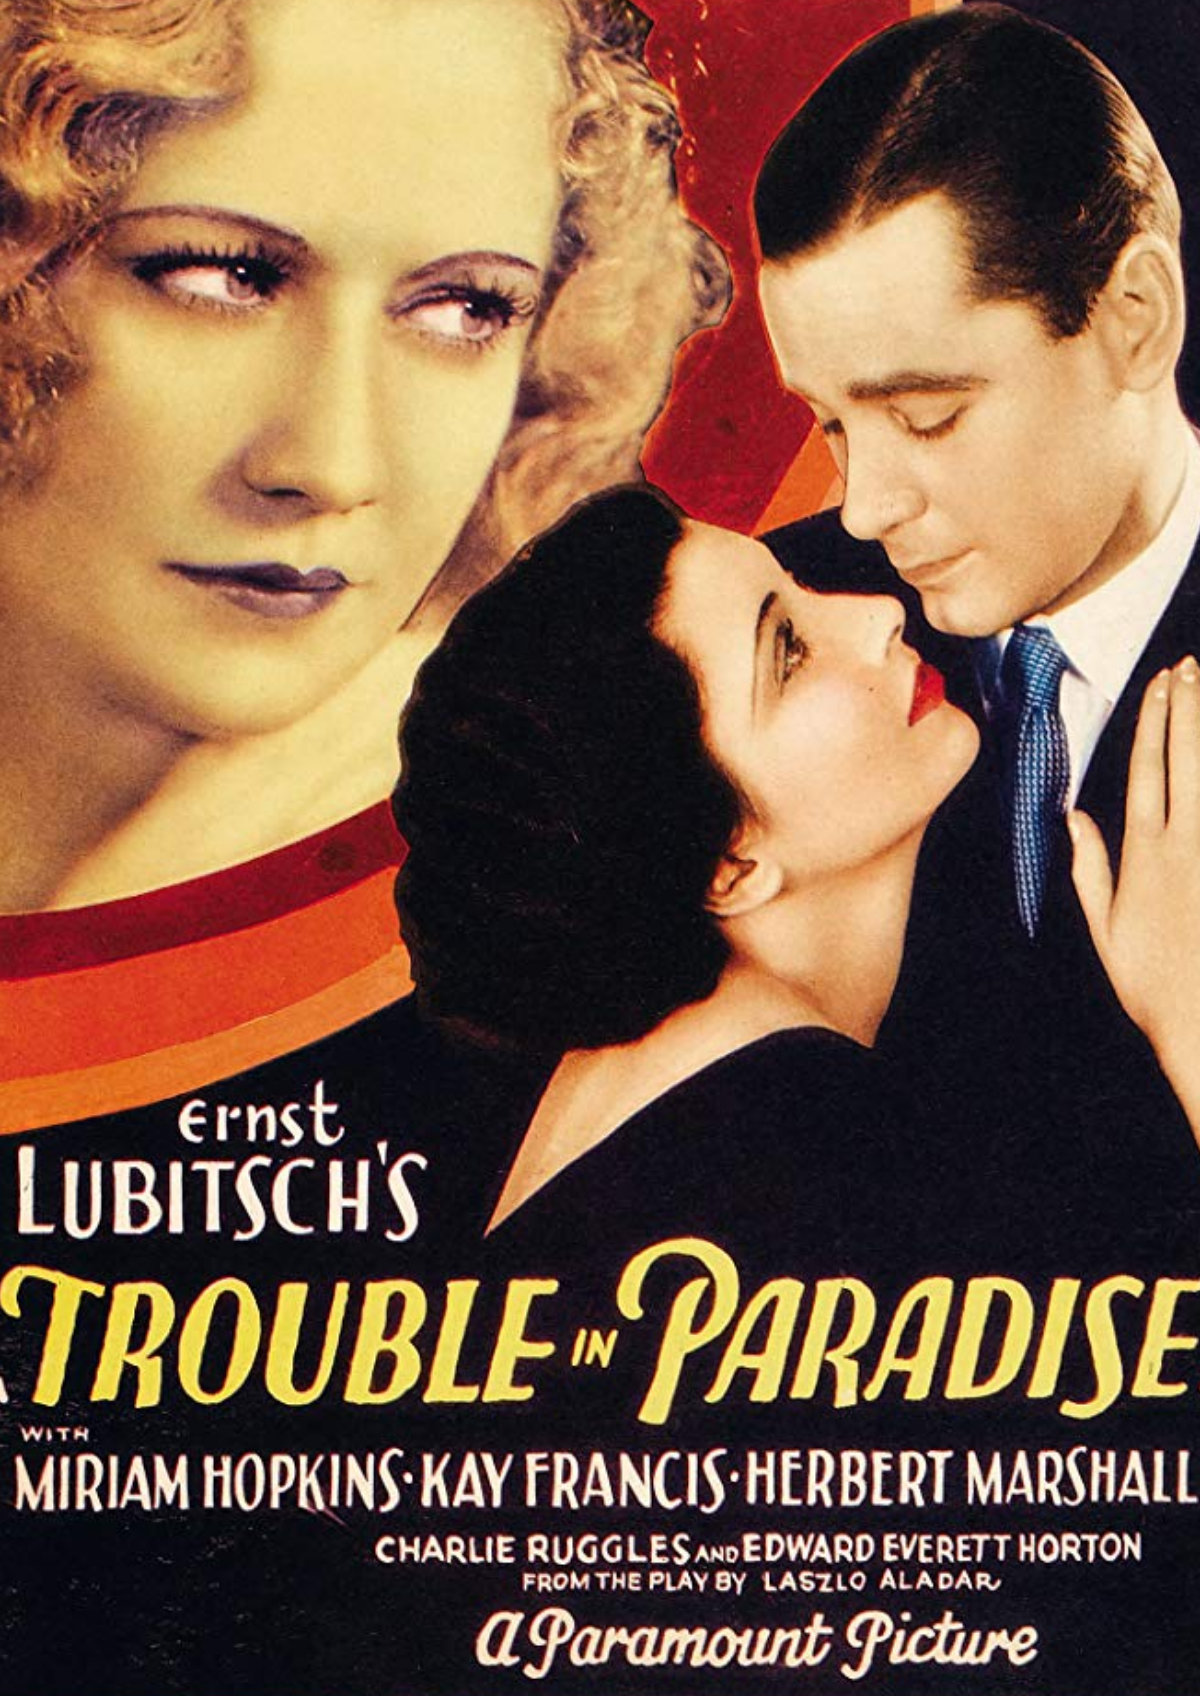 'Trouble In Paradise' movie poster